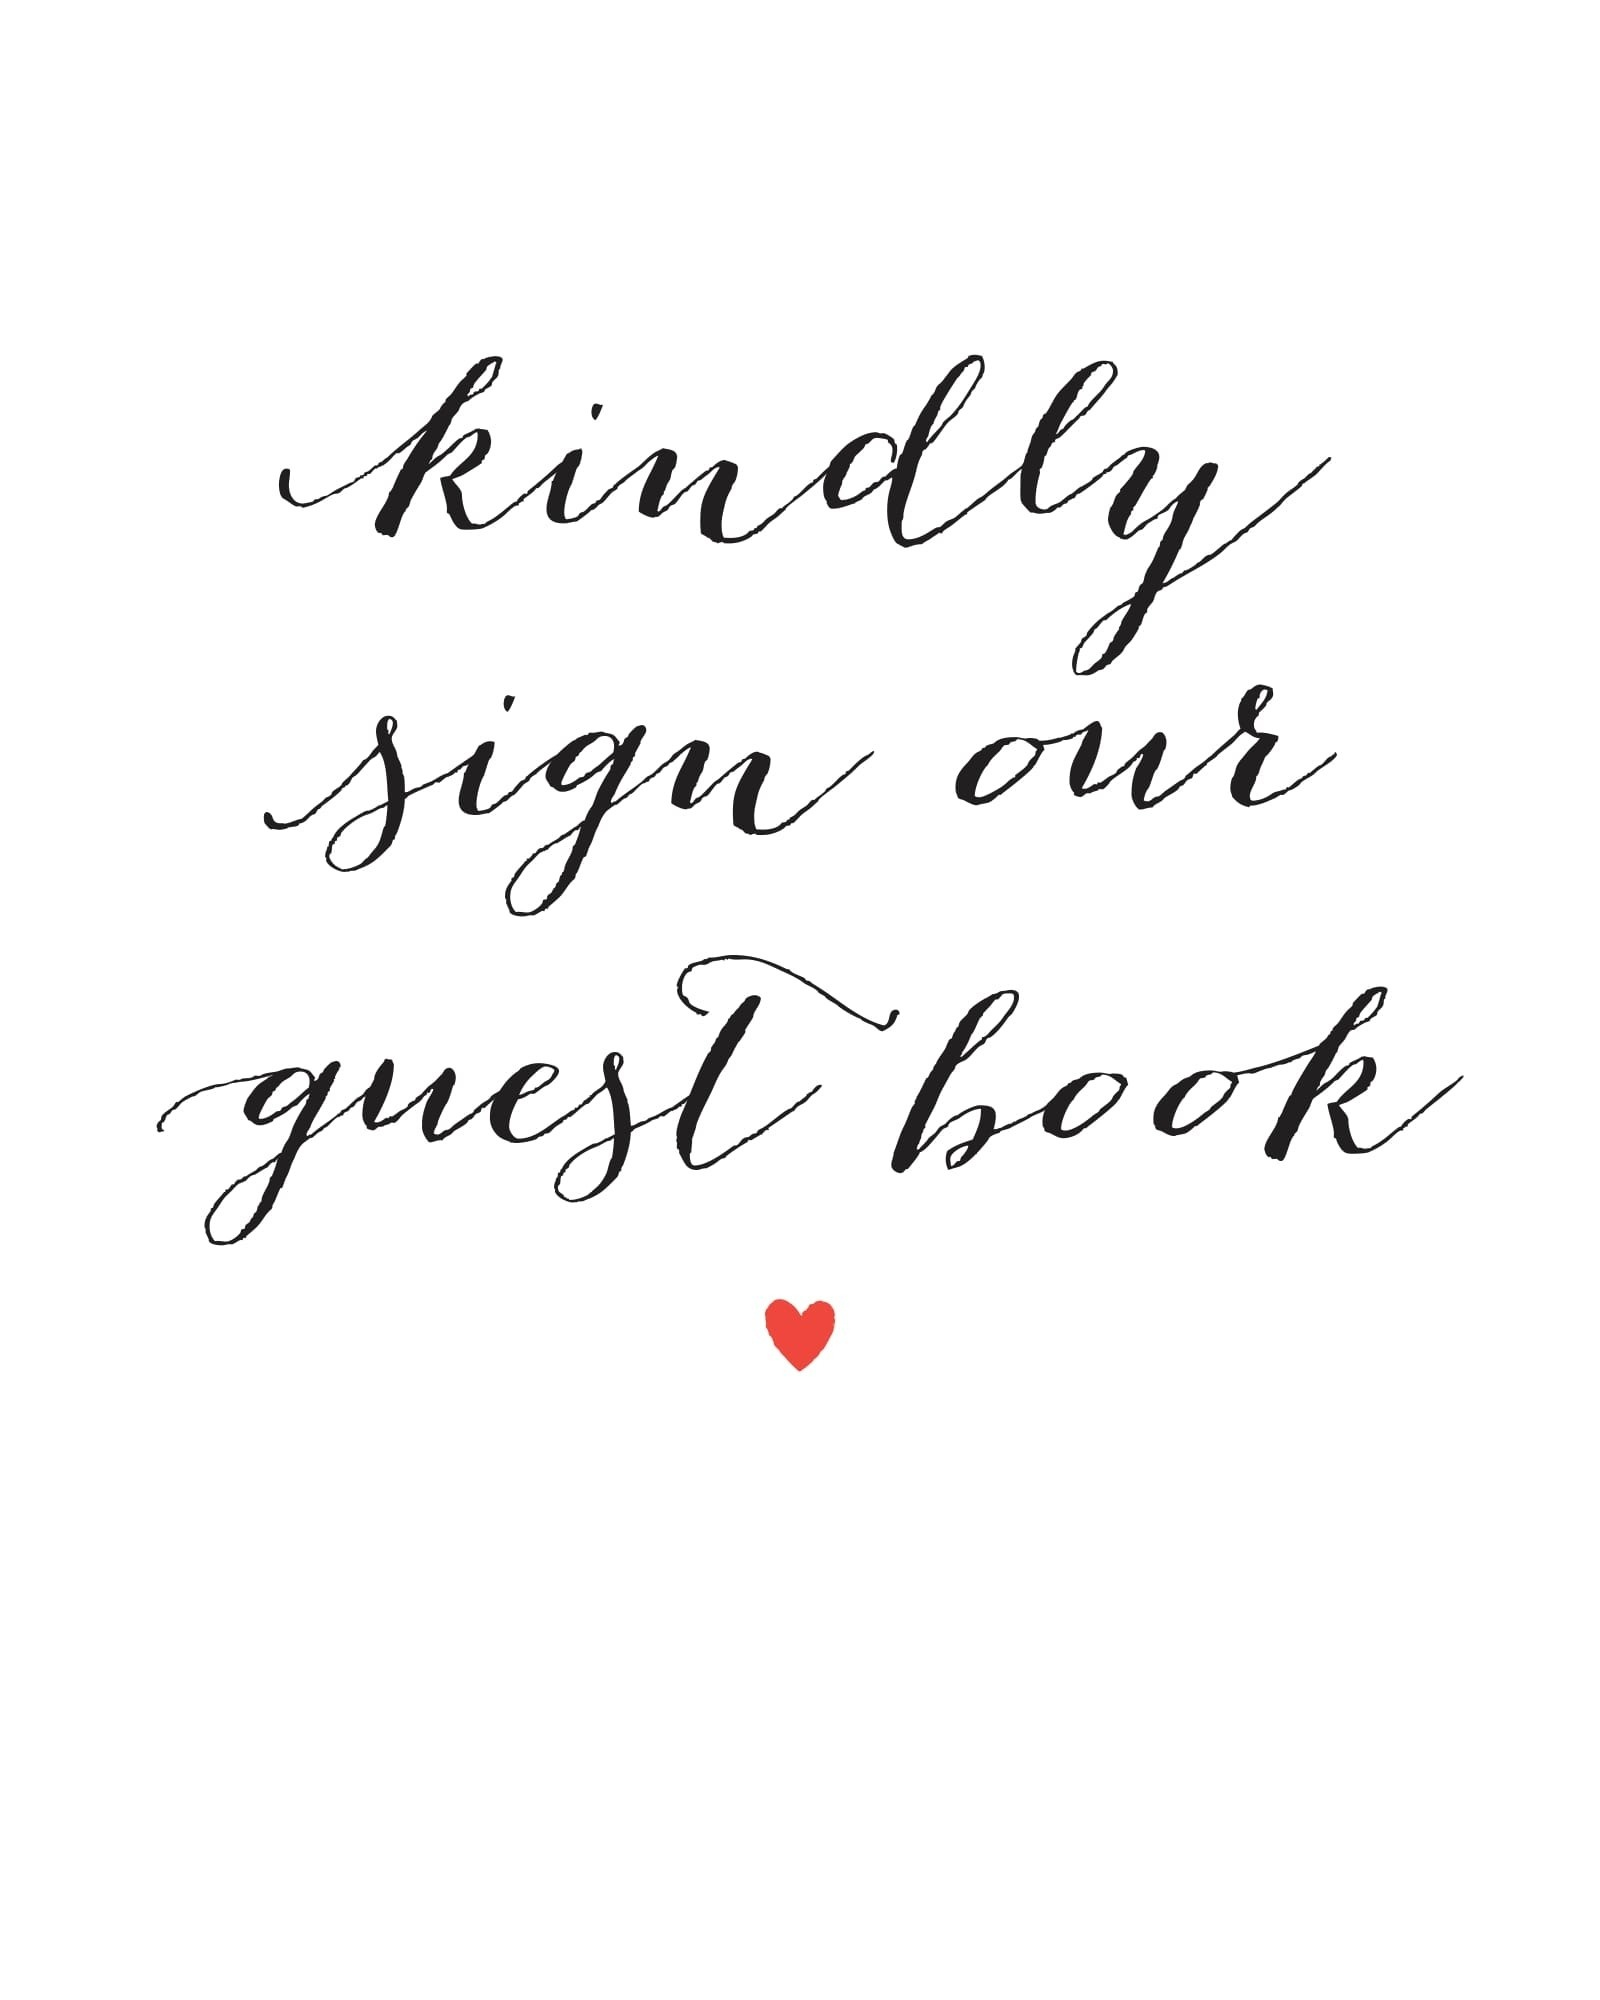 Wedding Signs Printables And Diy Templates Of Signs - Please Sign Our Guestbook Free Printable